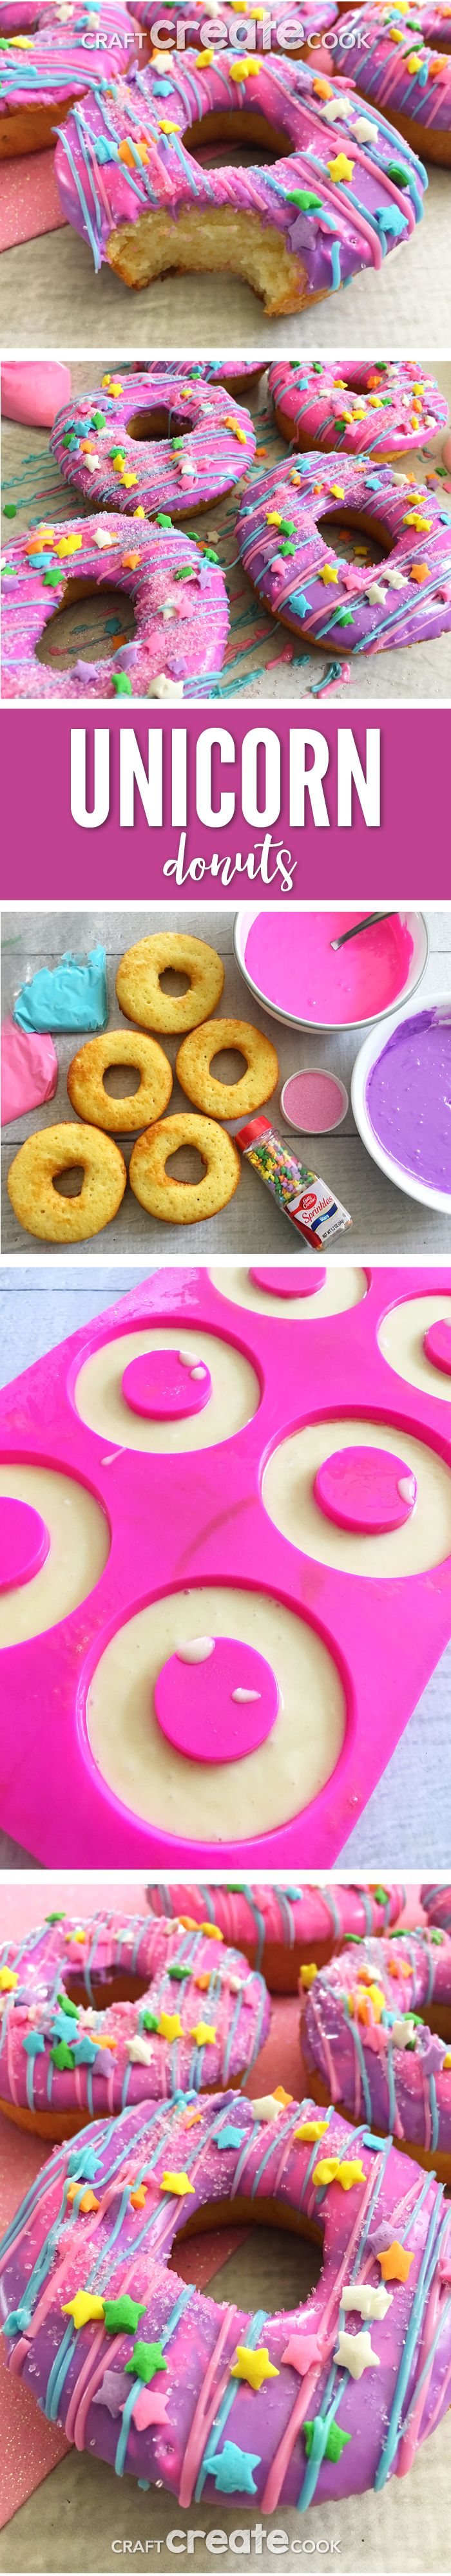 Our Colorful Unicorn Cake Donuts will make you squeal with excitement!    via @CraftCreatCook1